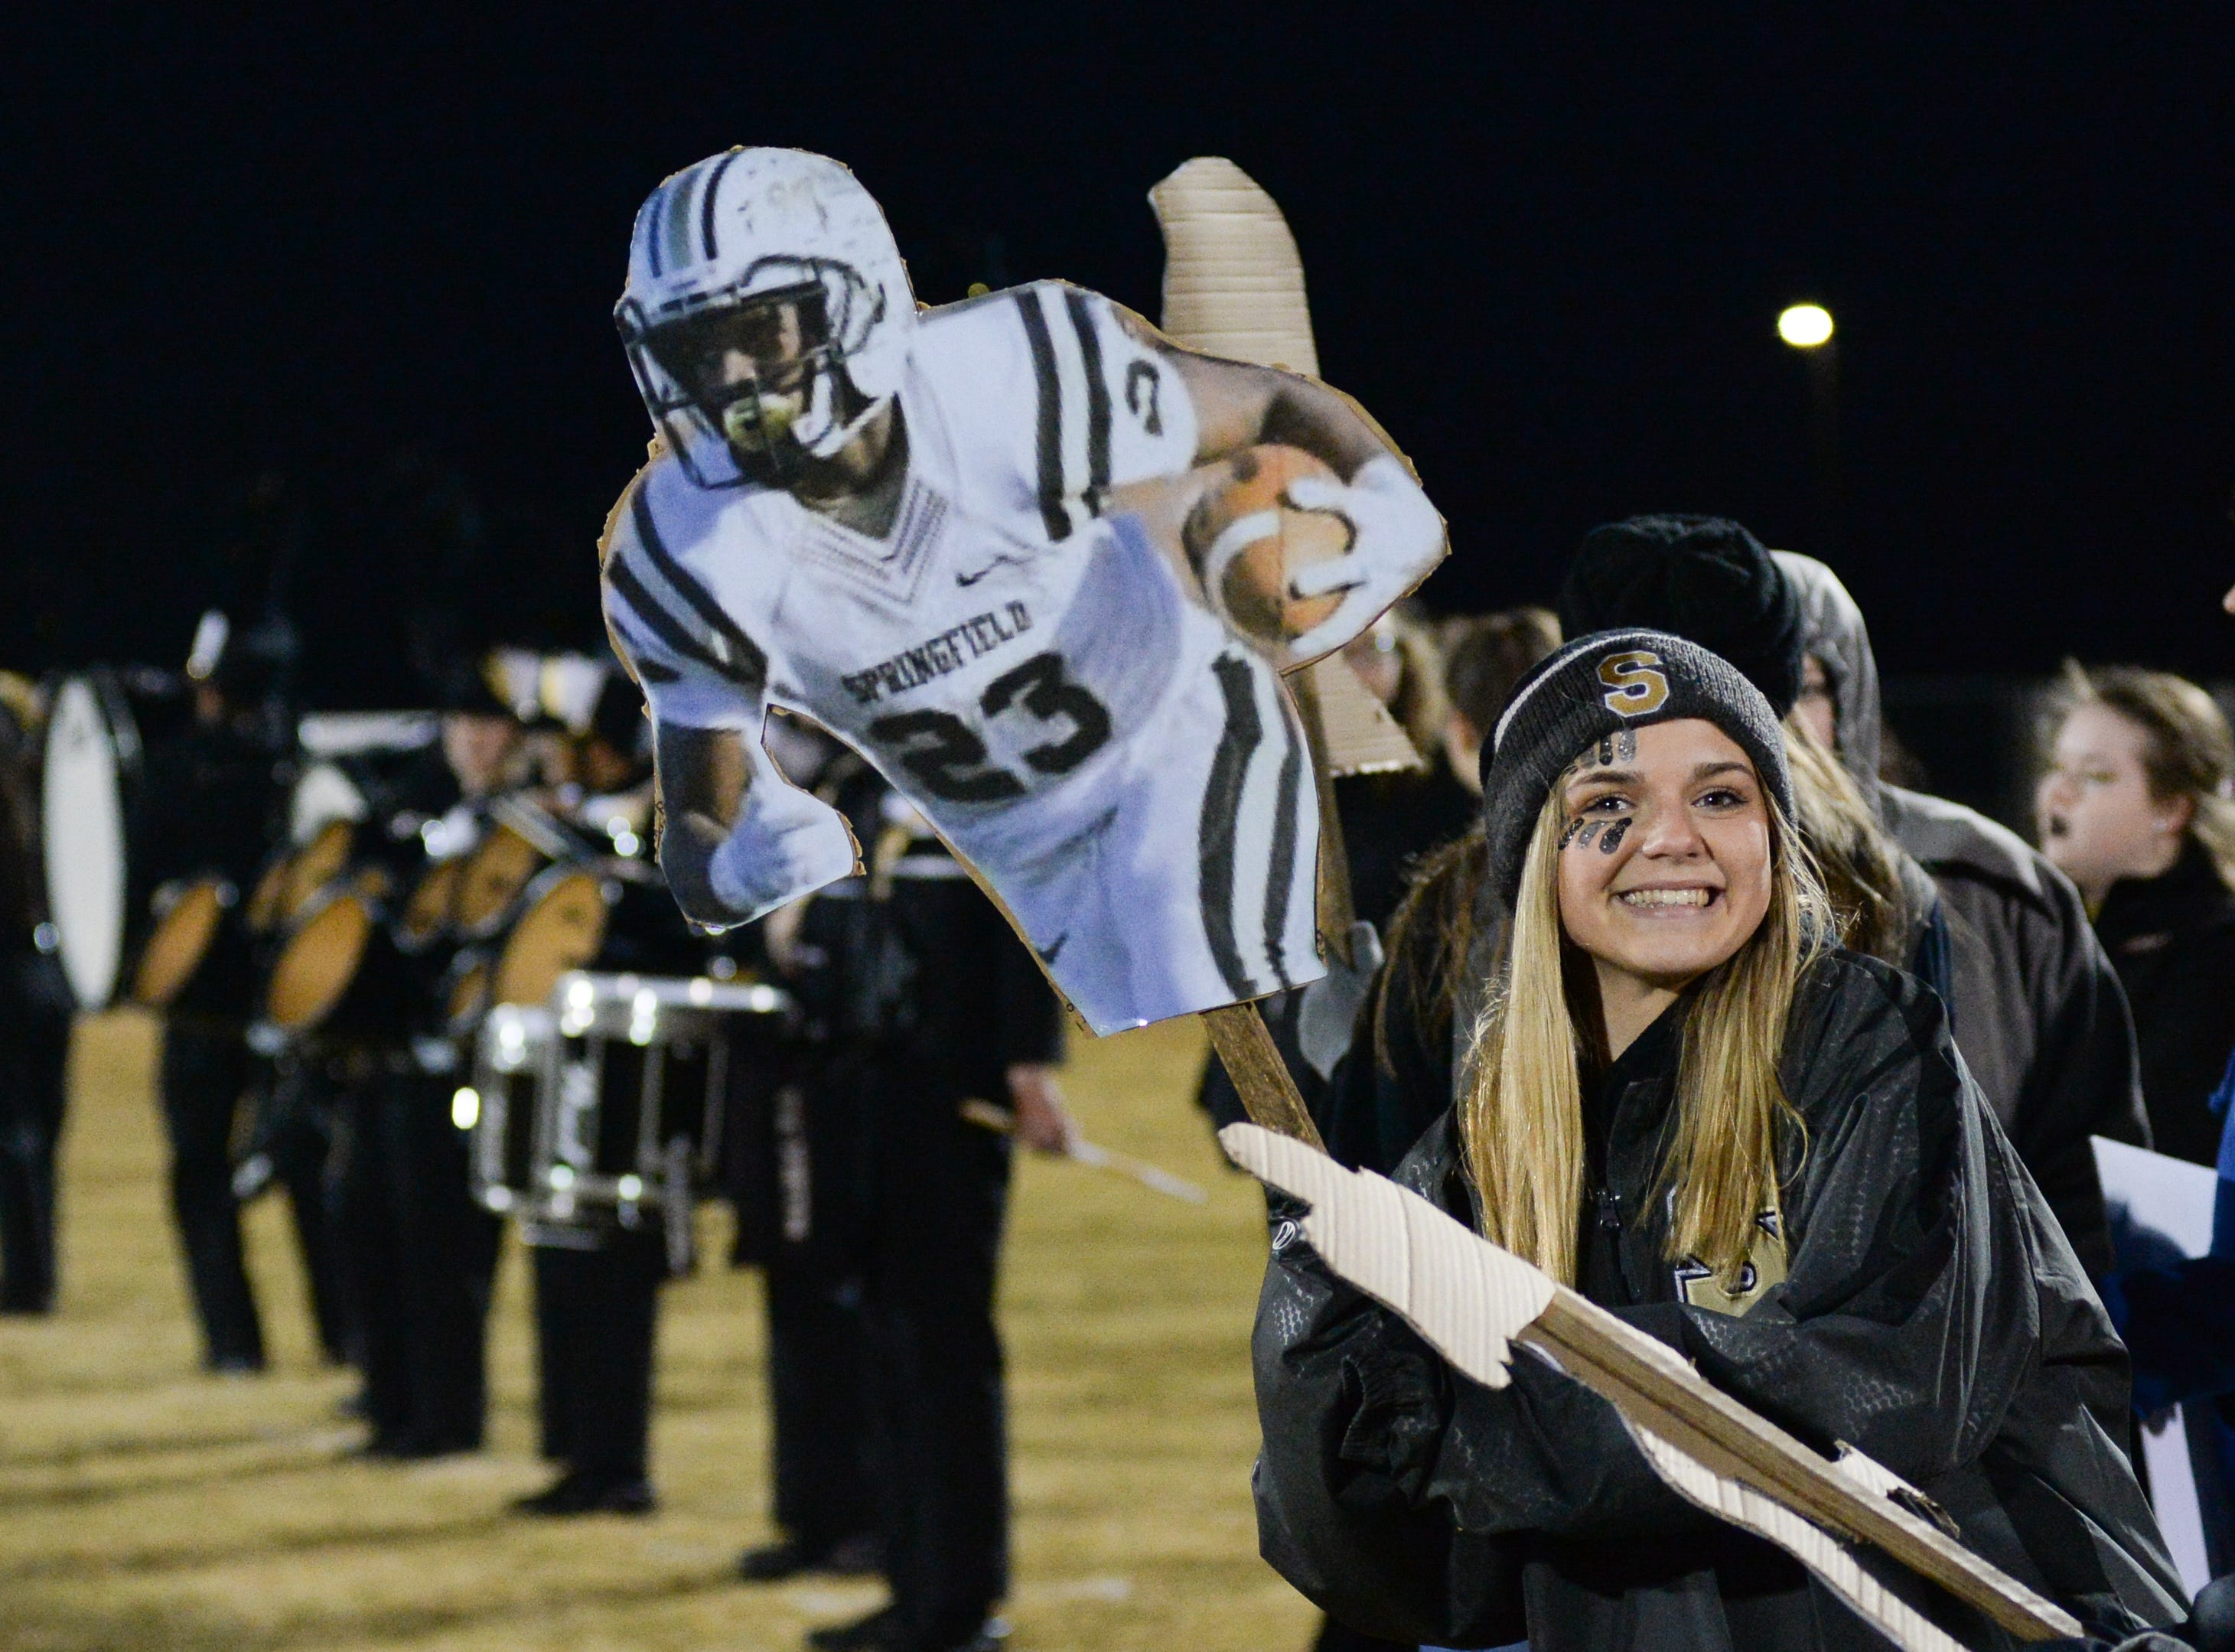 Springfield High School fans have a blast at Springfield High School on Friday, Nov. 9.